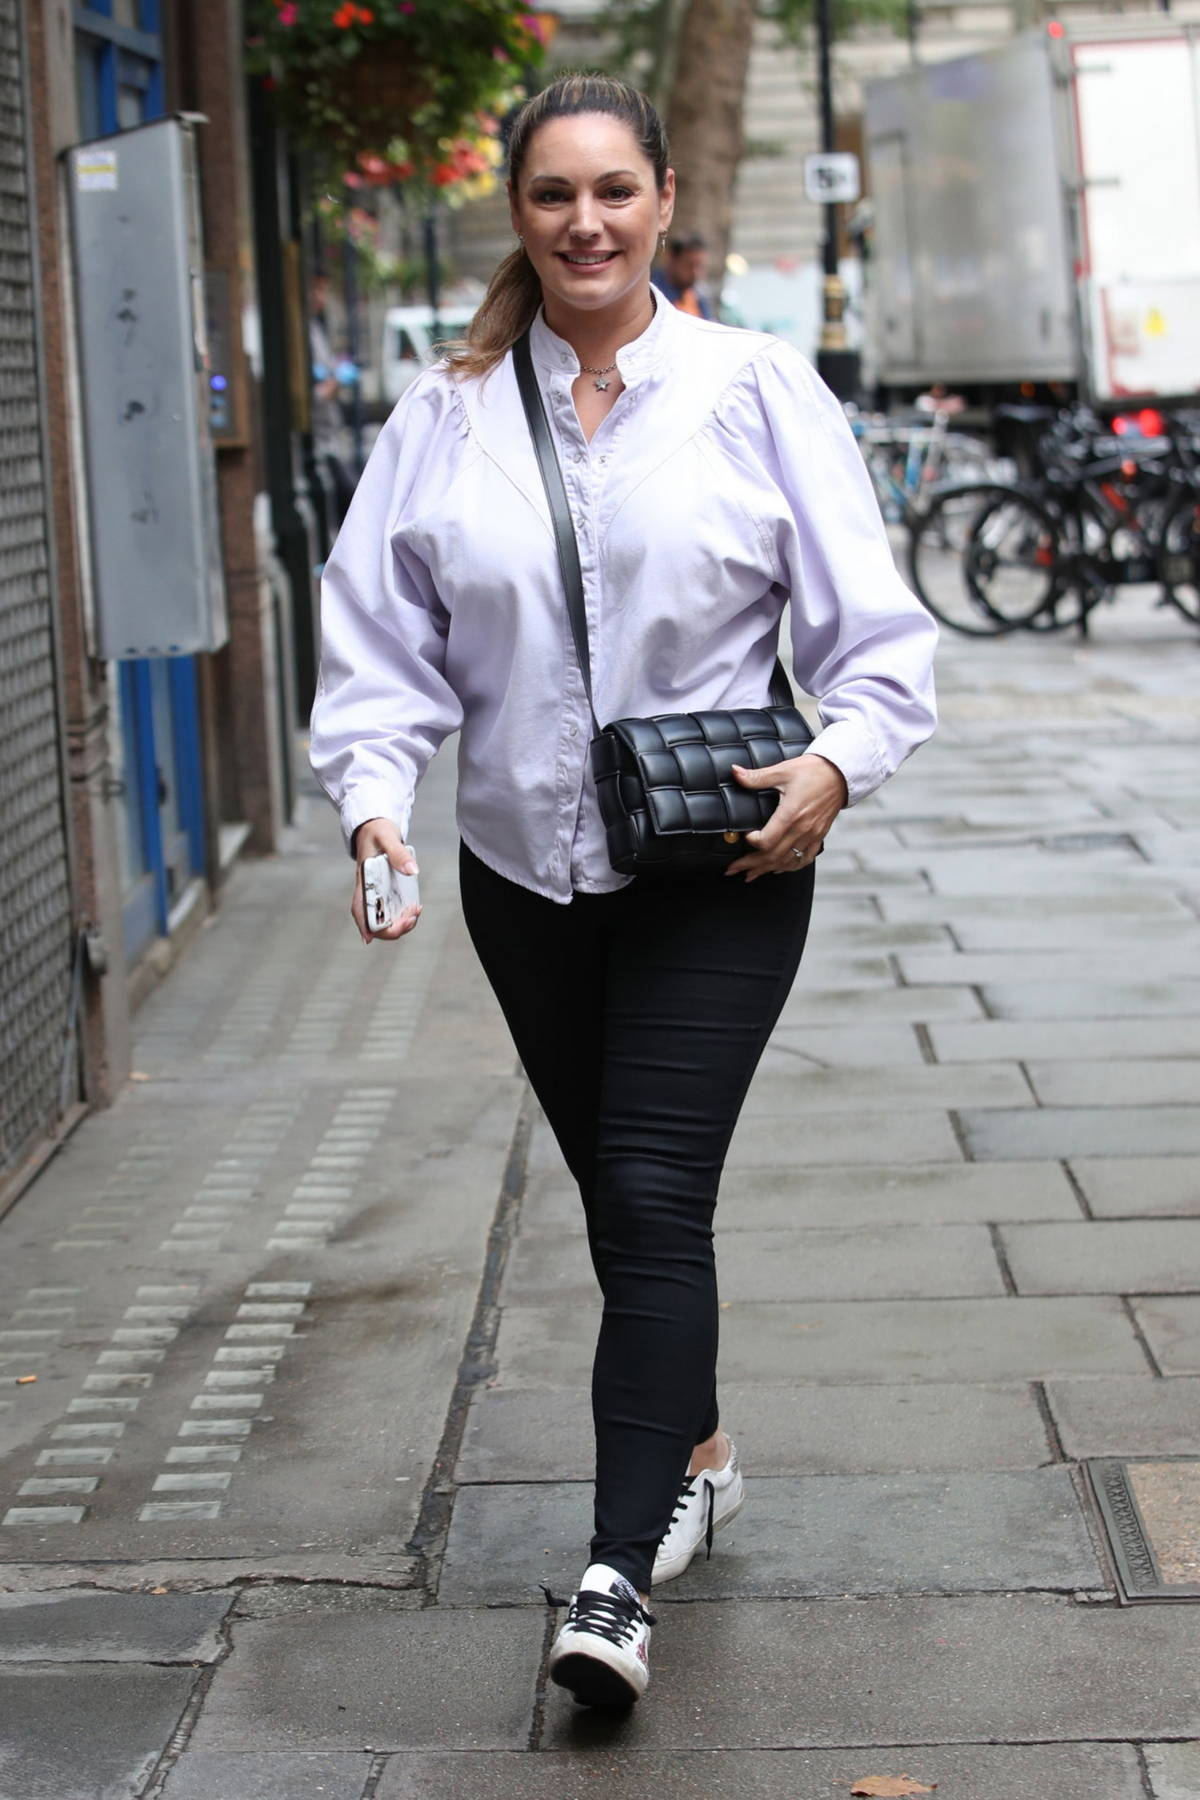 Kelly Brook looks great in a soft lavender shirt and black skin-tight jeans at the Global Radio studios in London, UK